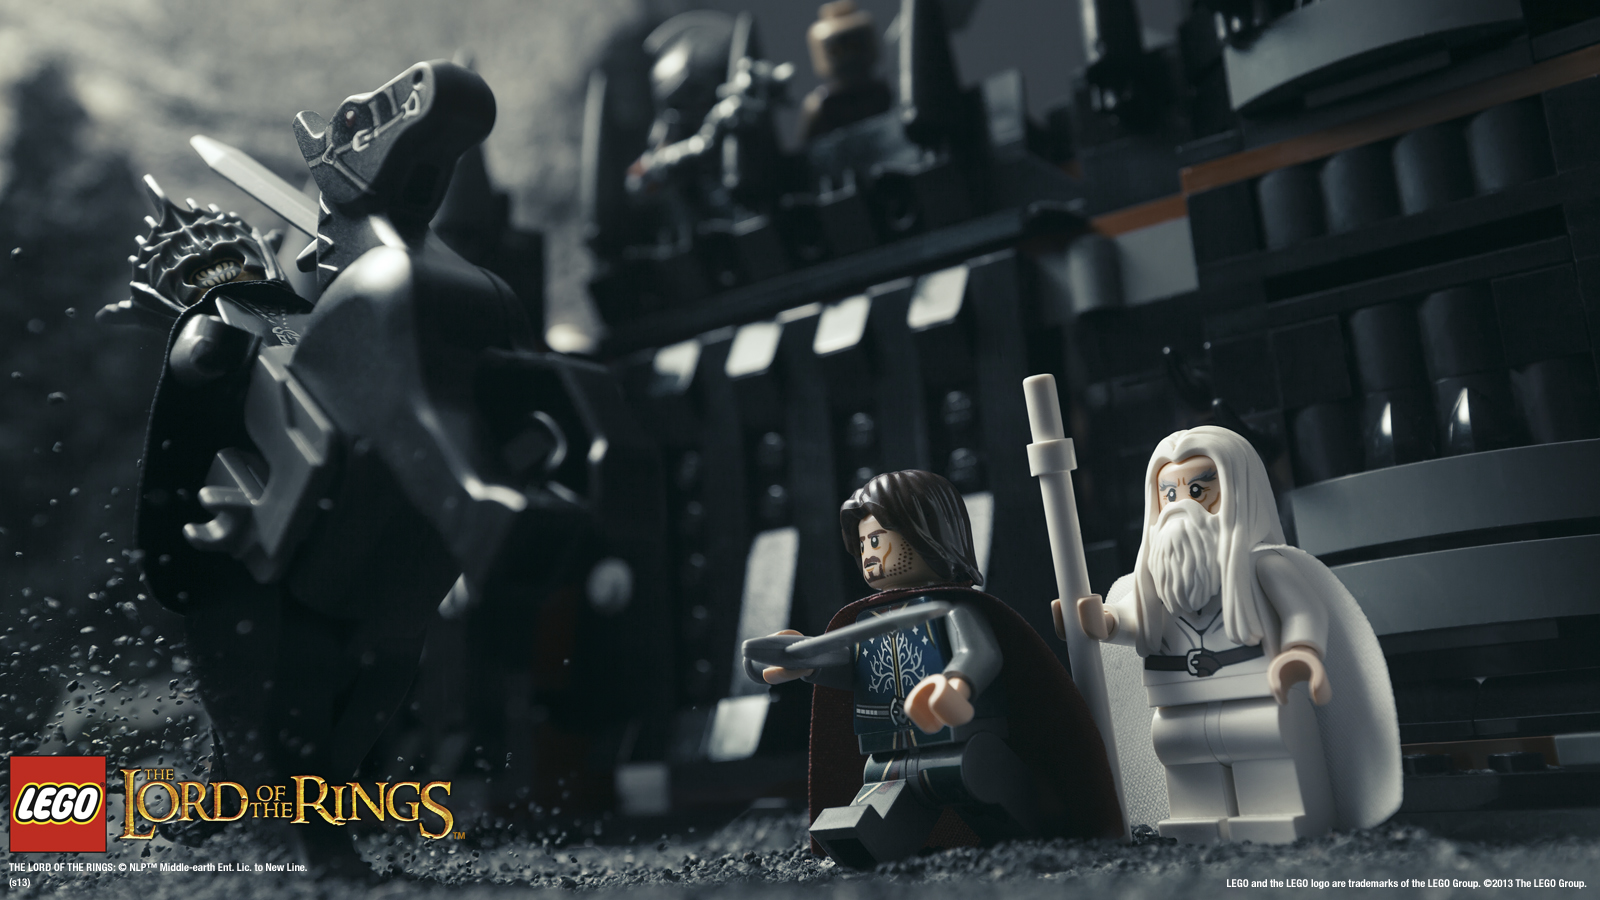 Communitylego T5 LORD OF THE RINGS Gallery Refugee And LotR Fan Wallpaper M P 6208754U6208754